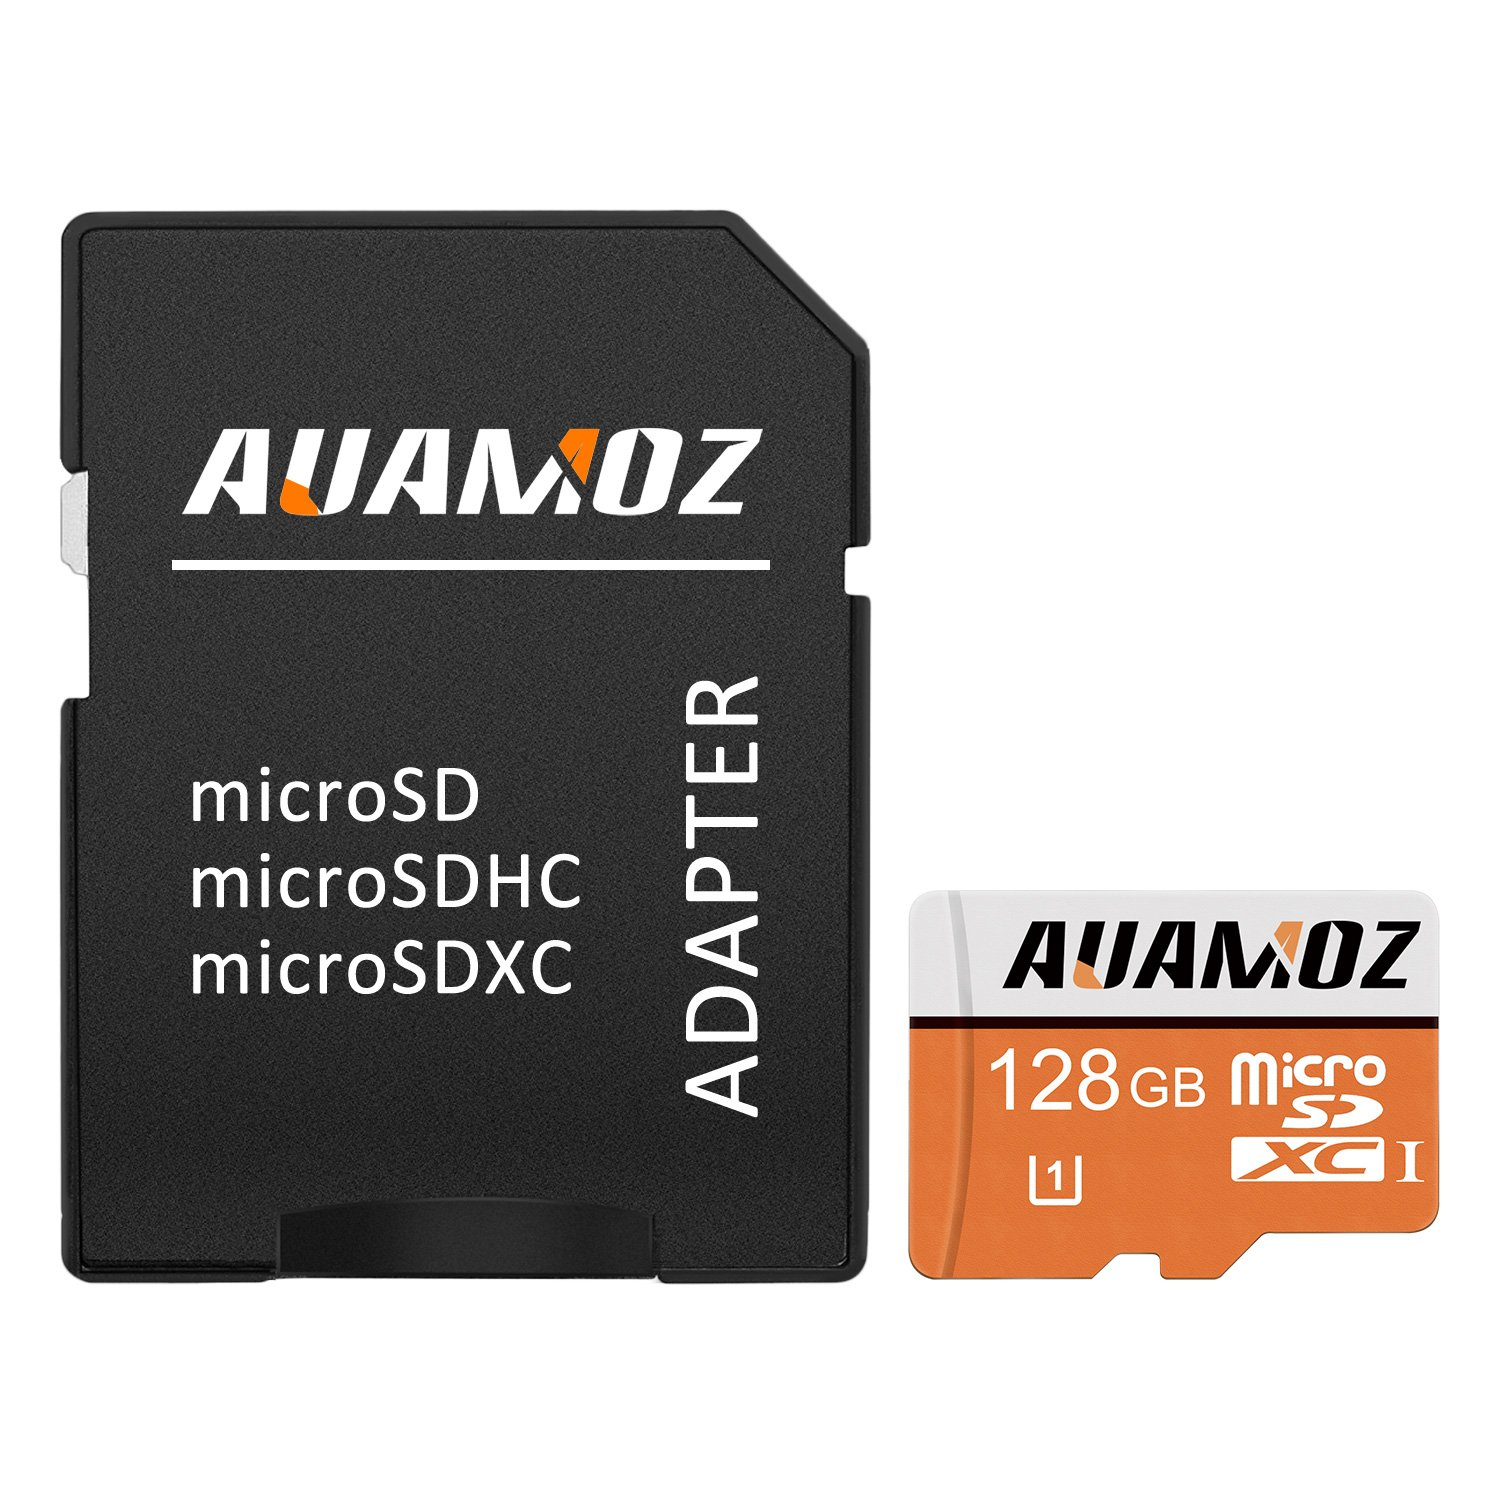 Micro SD Card 128GB,AUAMOZ Micro SDXC Class 10 UHS-I High Speed Memory Card for Phone,Tablet and PCs - with Adapter